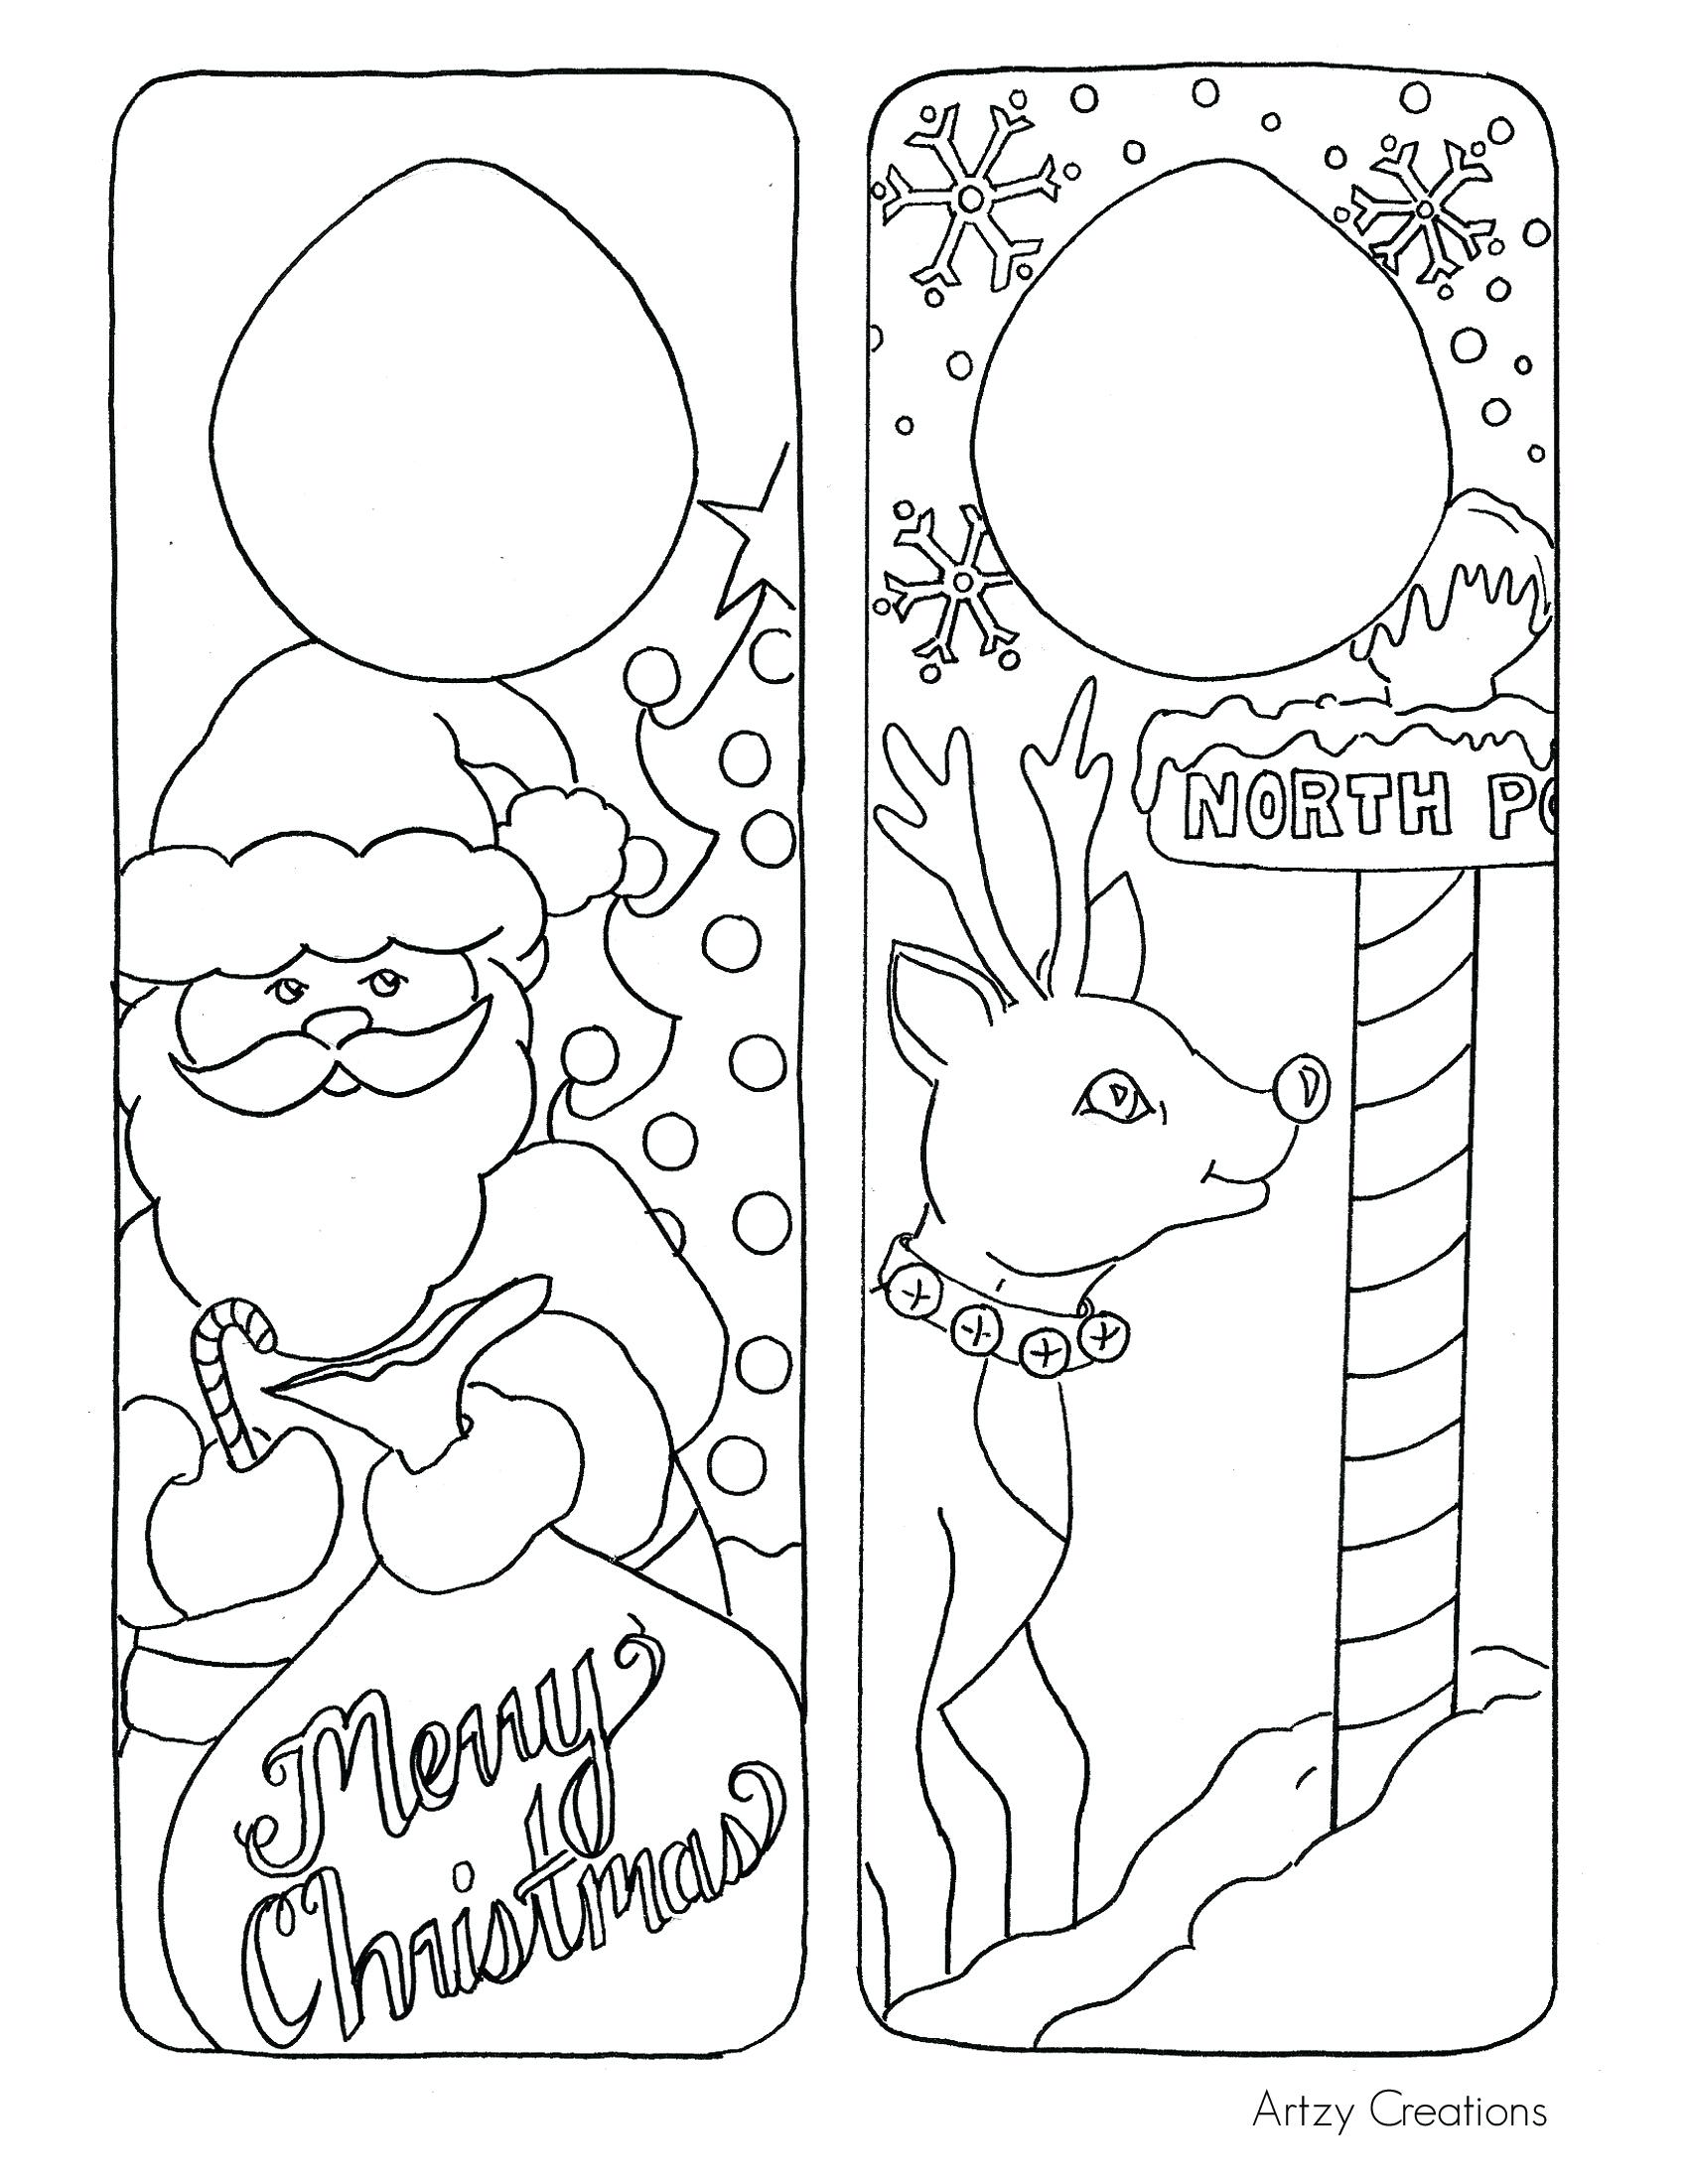 Christmas Card Coloring Pages At Getcolorings